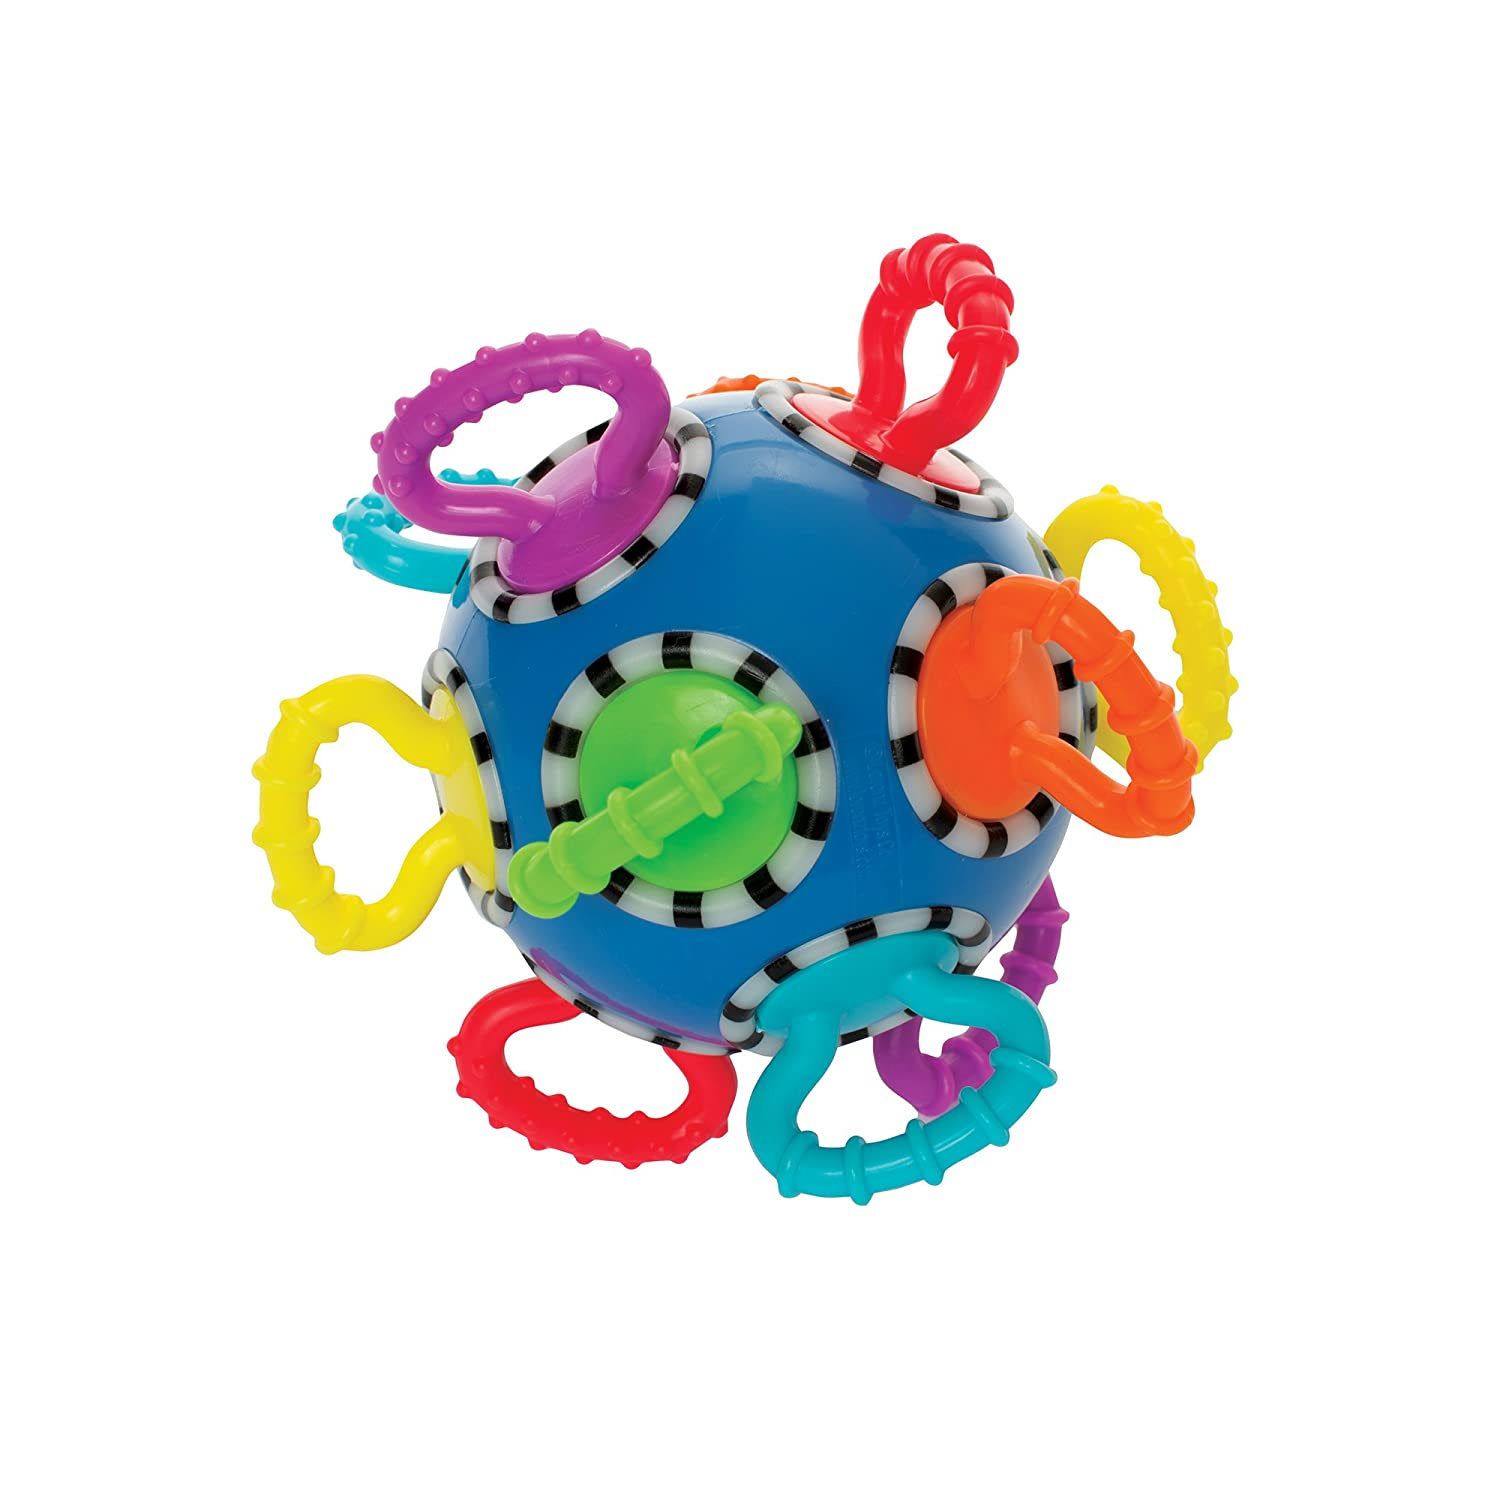 Manhattan Toy Click Clack Ball Developmental Baby Toy 214220